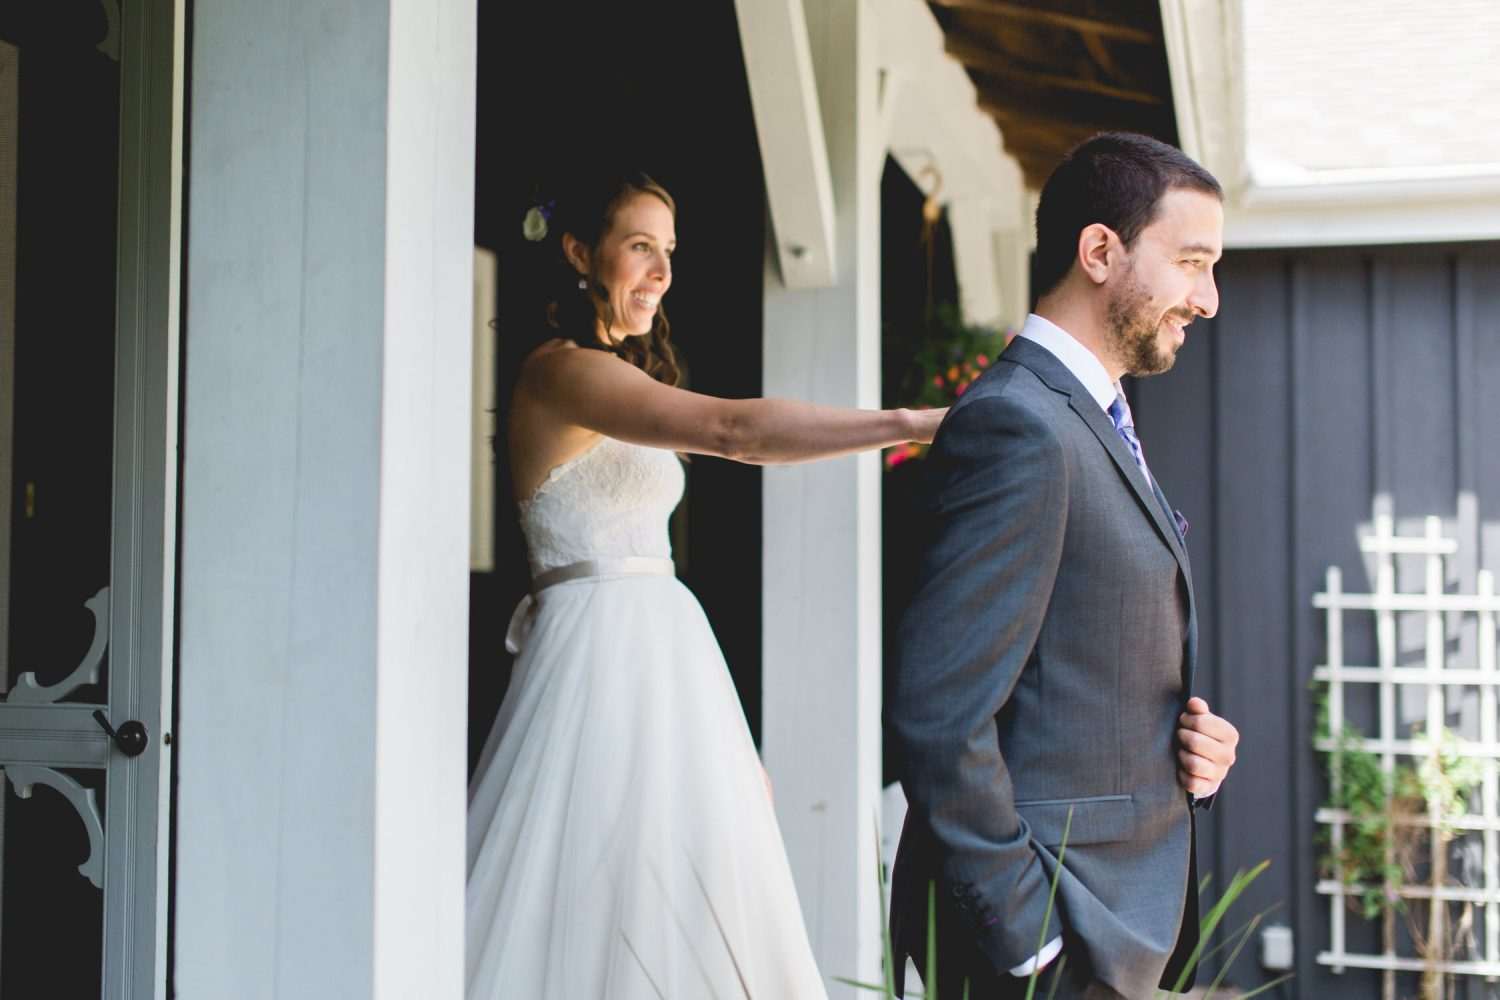 Bride taps groom's shoulder during the first look